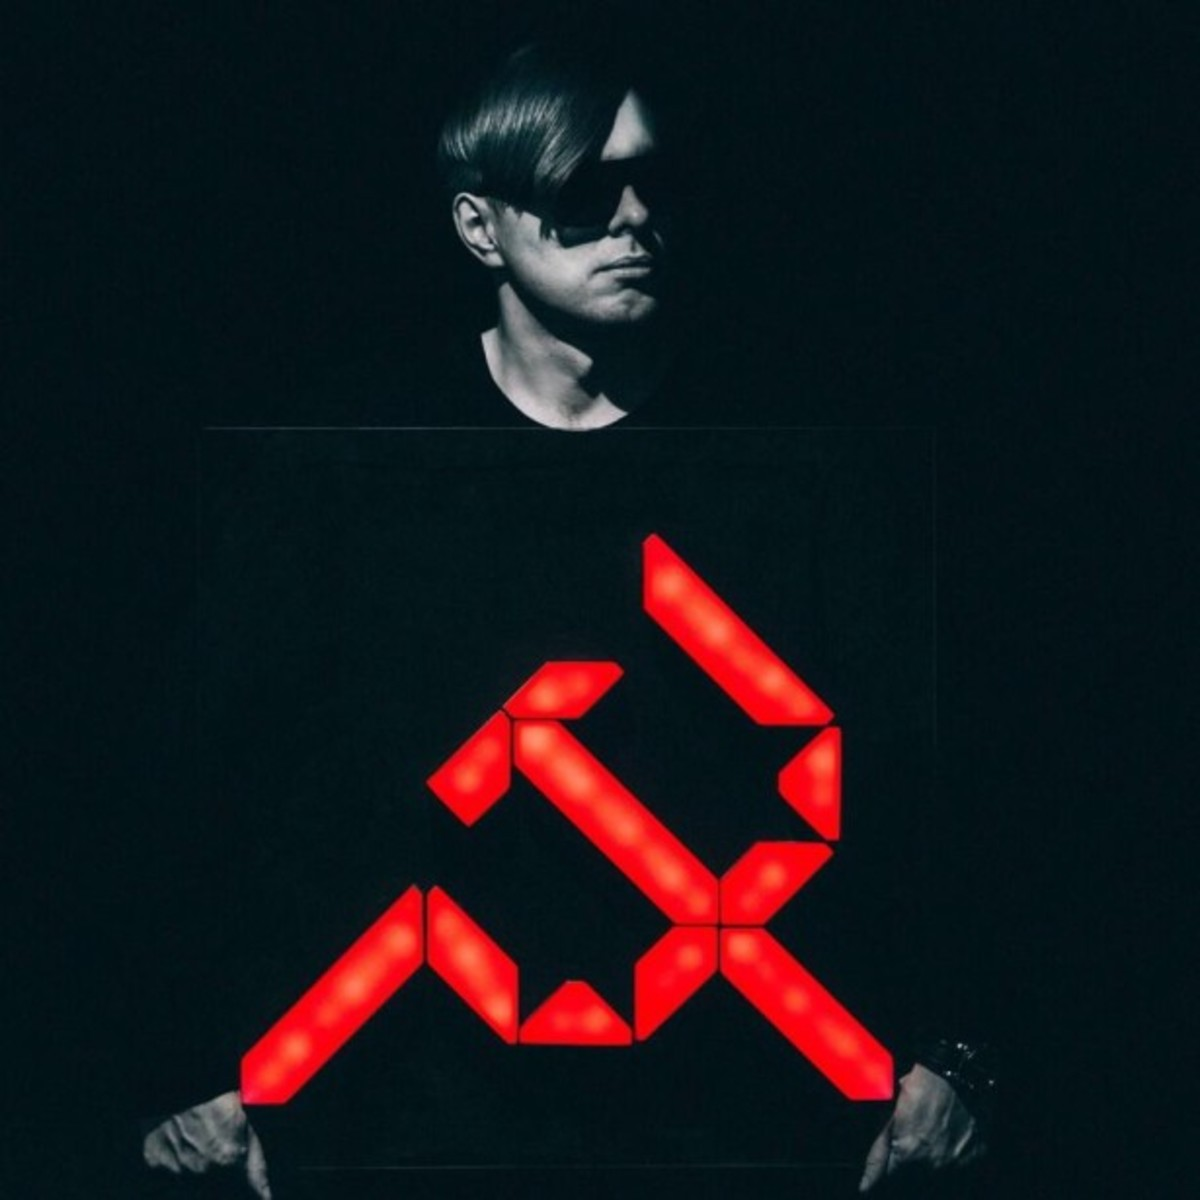 From Russia With Filth: Proxy Drops Explicit Single on mau5trap